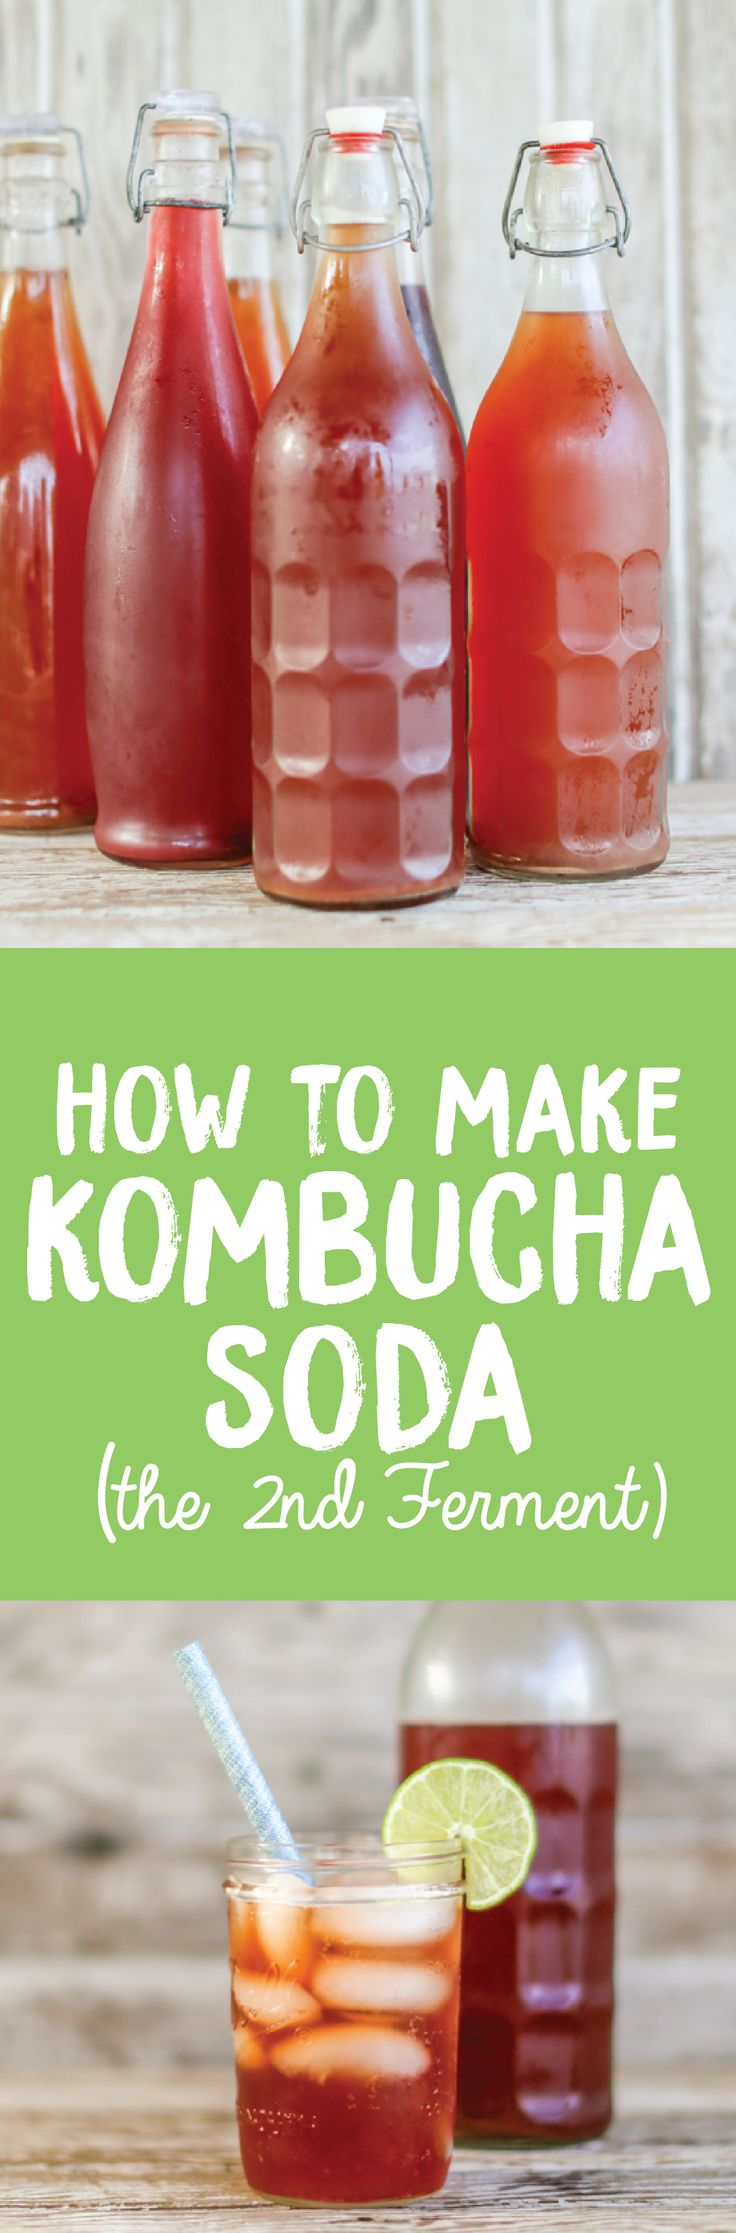 How to make Kombucha Soda (second ferment) http://www.healthstartsinthekitchen.com/recipe/make-kombucha-soda-second-ferment/?utm_campaign=coschedule&utm_source=pinterest&utm_medium=Hayley%20%40%20Health%20Starts%20in%20the%20Kitchen&utm_content=How%20to%20make%20Kombucha%20Soda%20%28second%20ferment%29